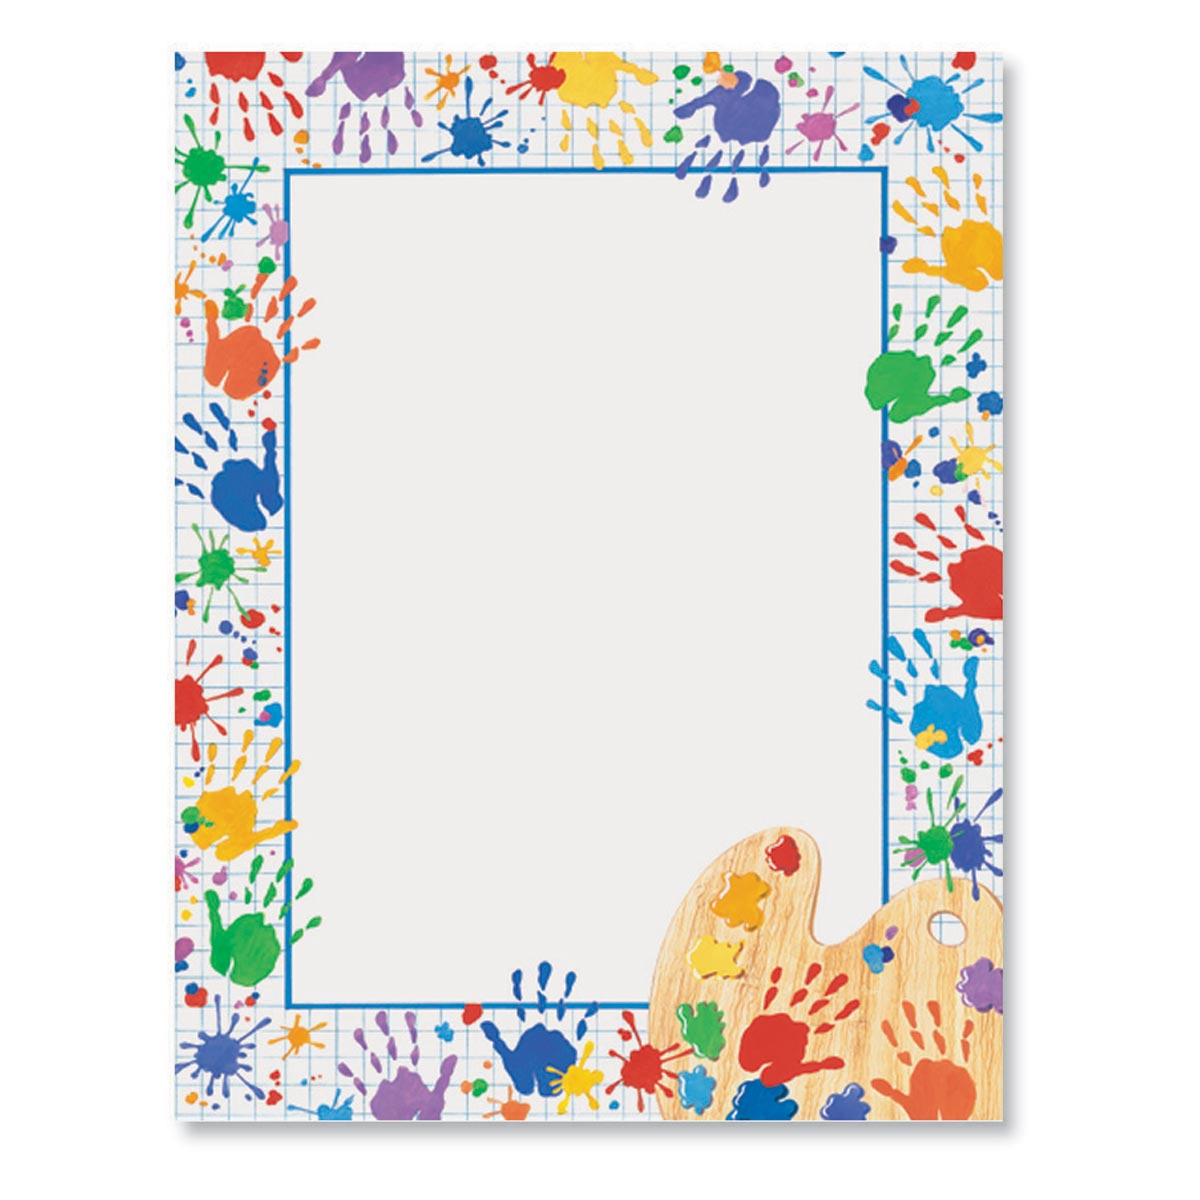 graphic about Printable Border Paper titled Handprints Border Printable Papers Andersons